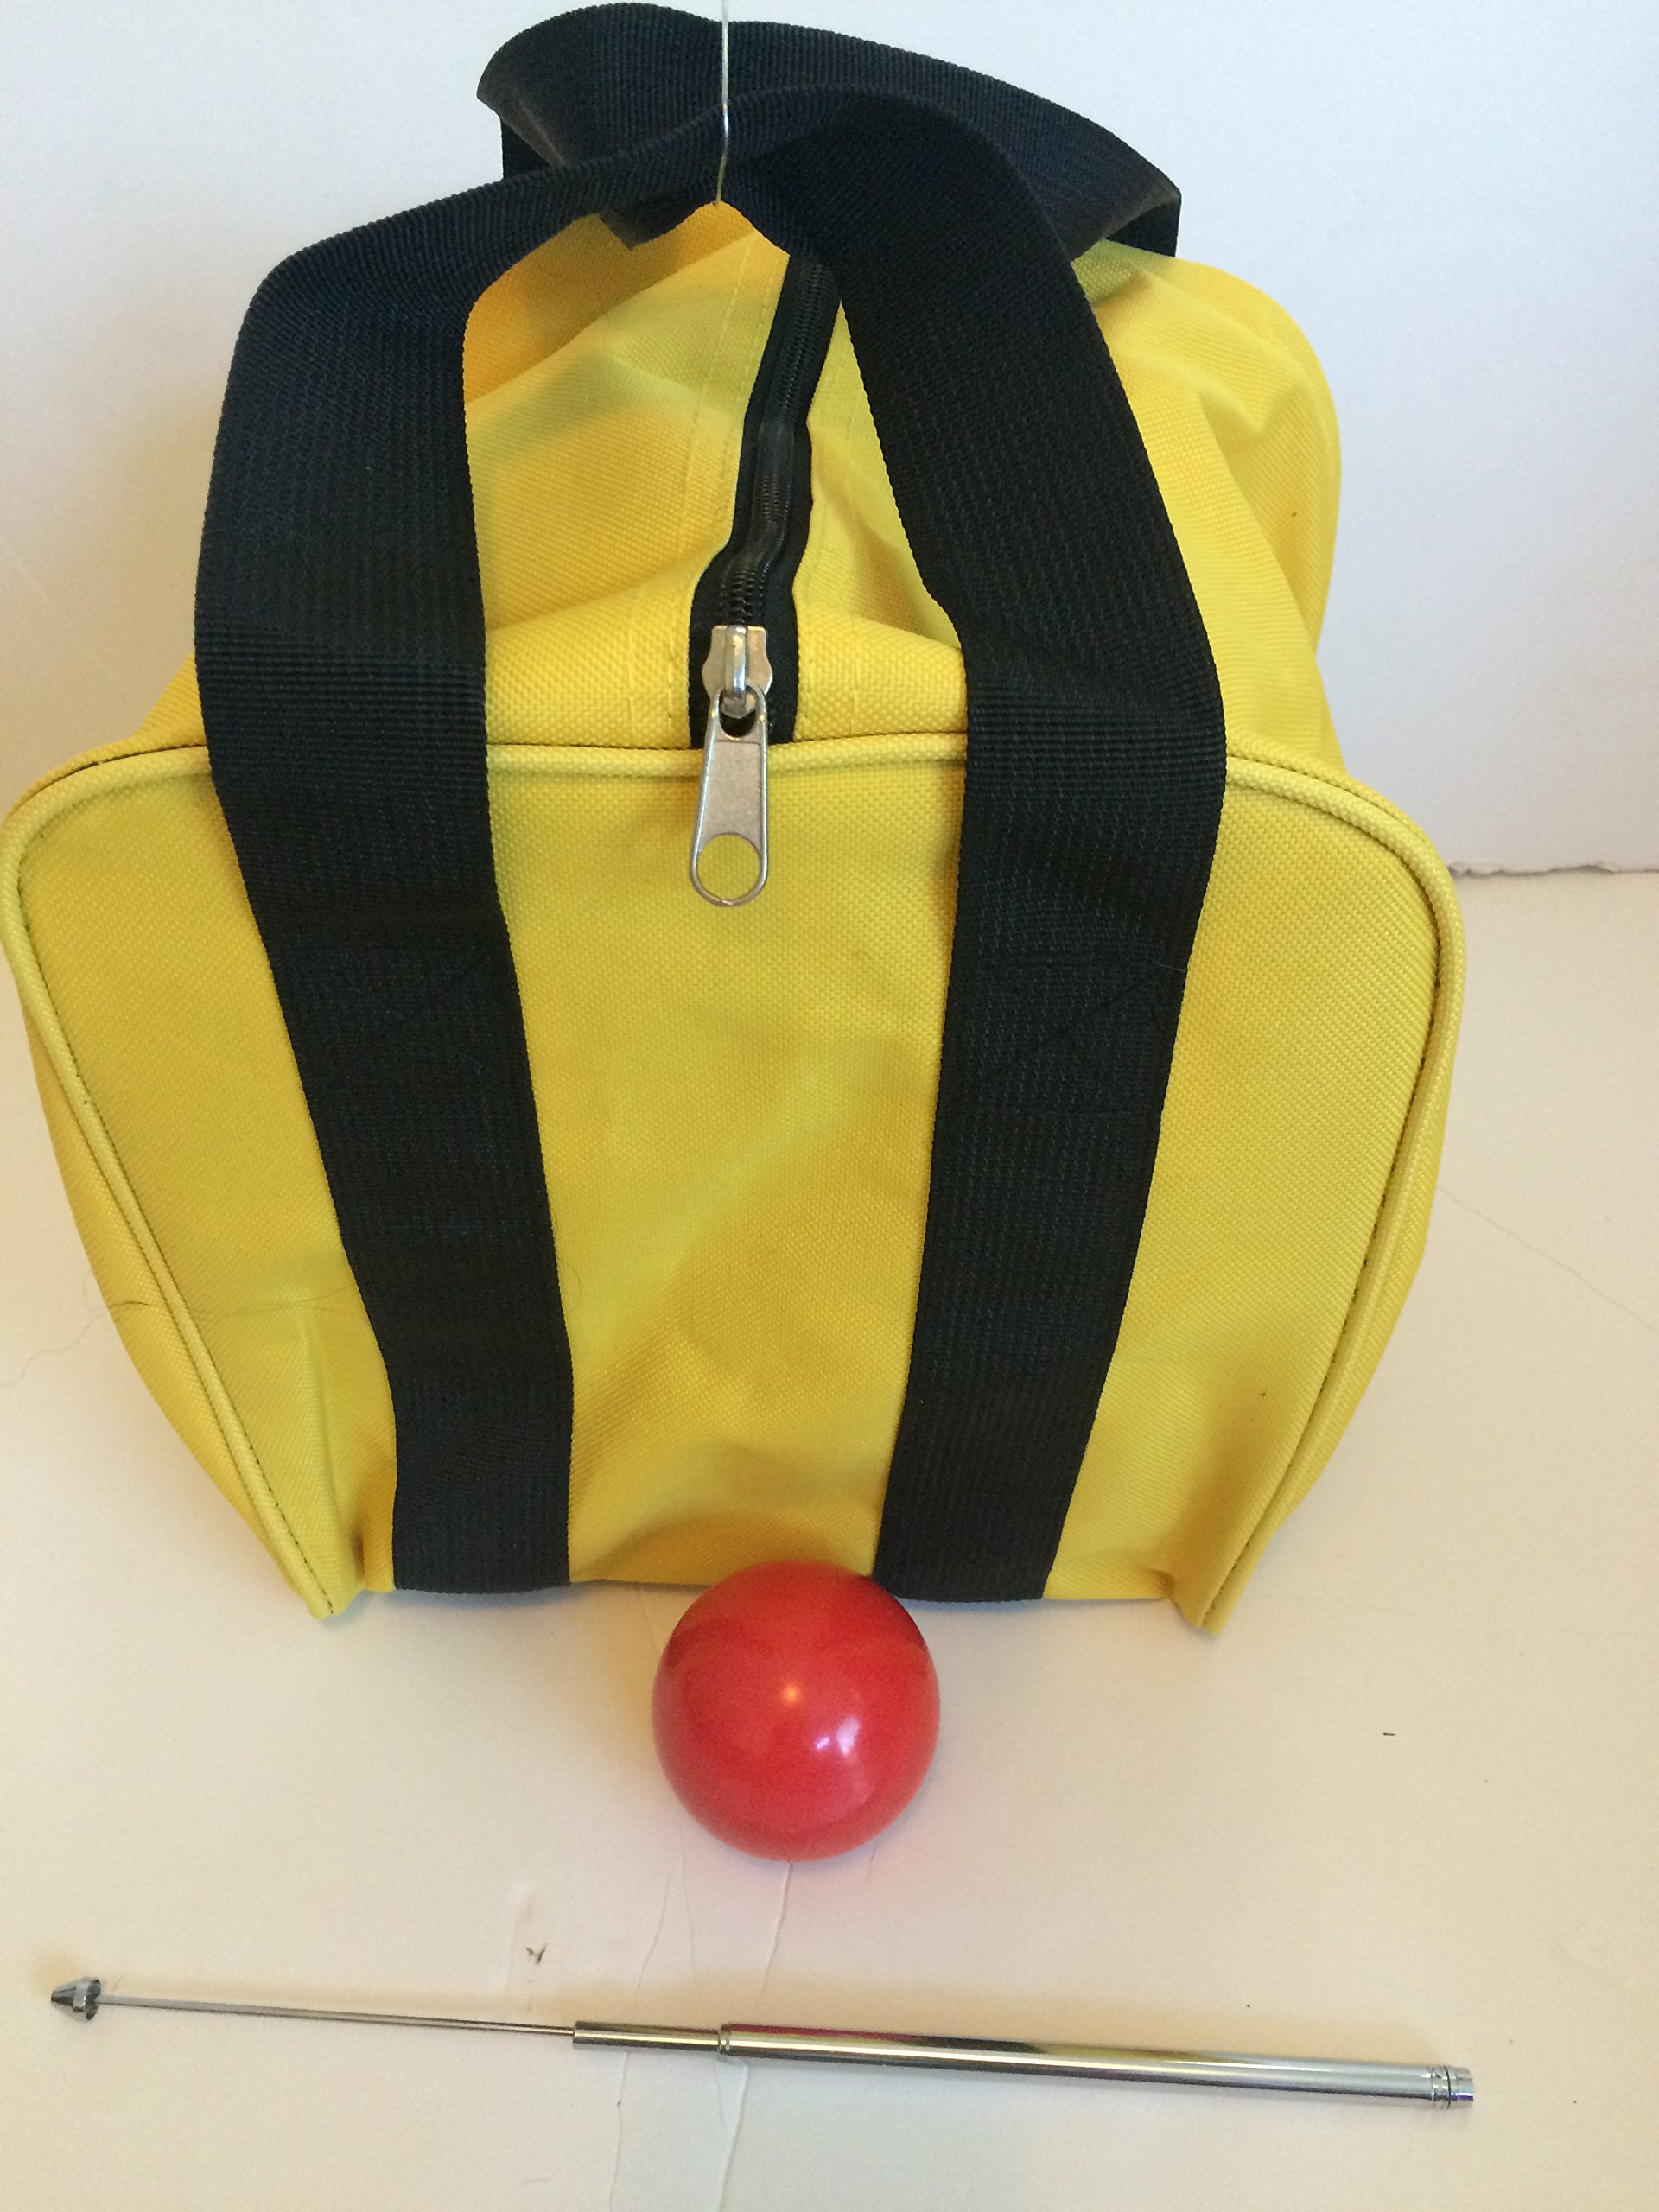 Unique Bocce Accessories Package - Extra Heavy Duty Nylon Bocce Bag (Yellow with Black Handles), red pallina, Extendable Measuring Device by BuyBocceBalls